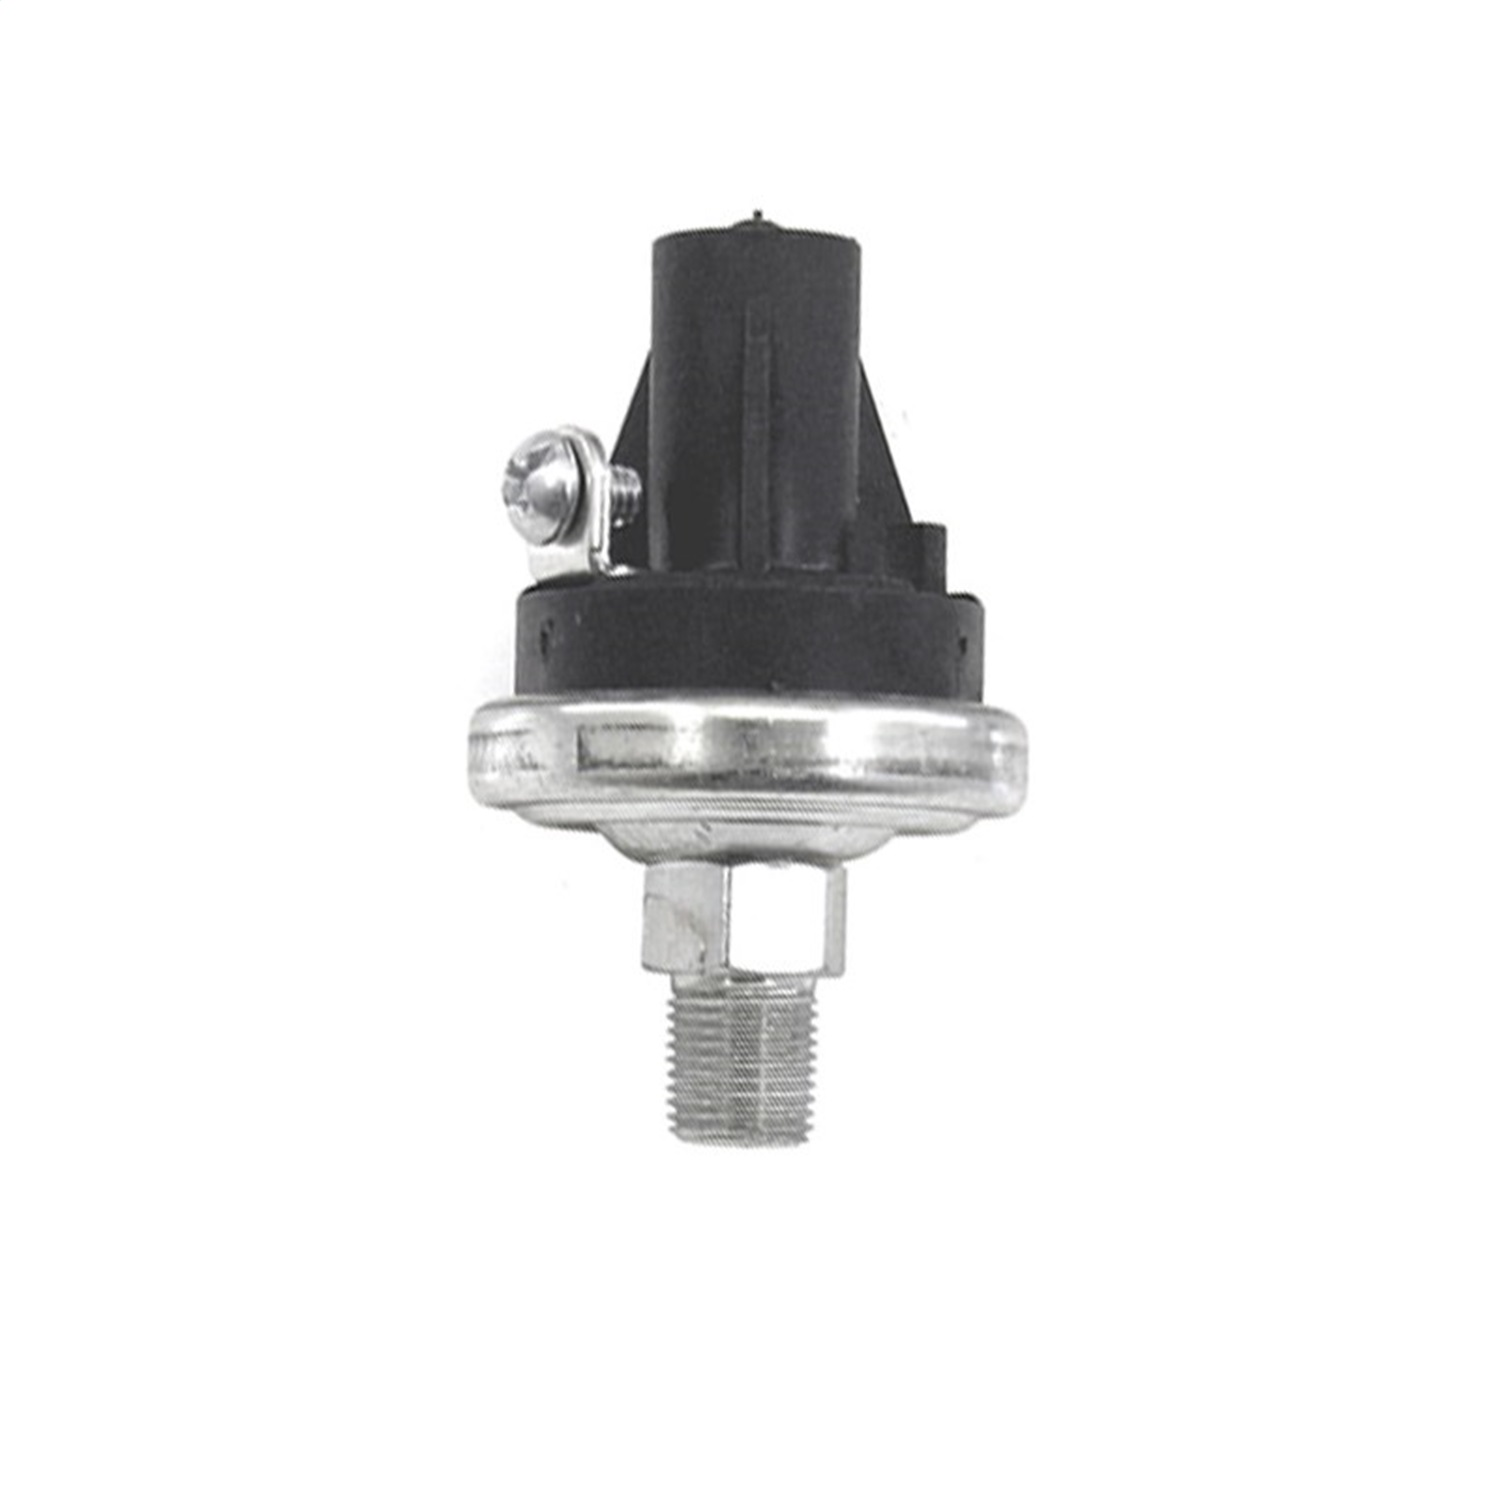 Nitrous Express 15708 Fuel Pressure Safety Switch